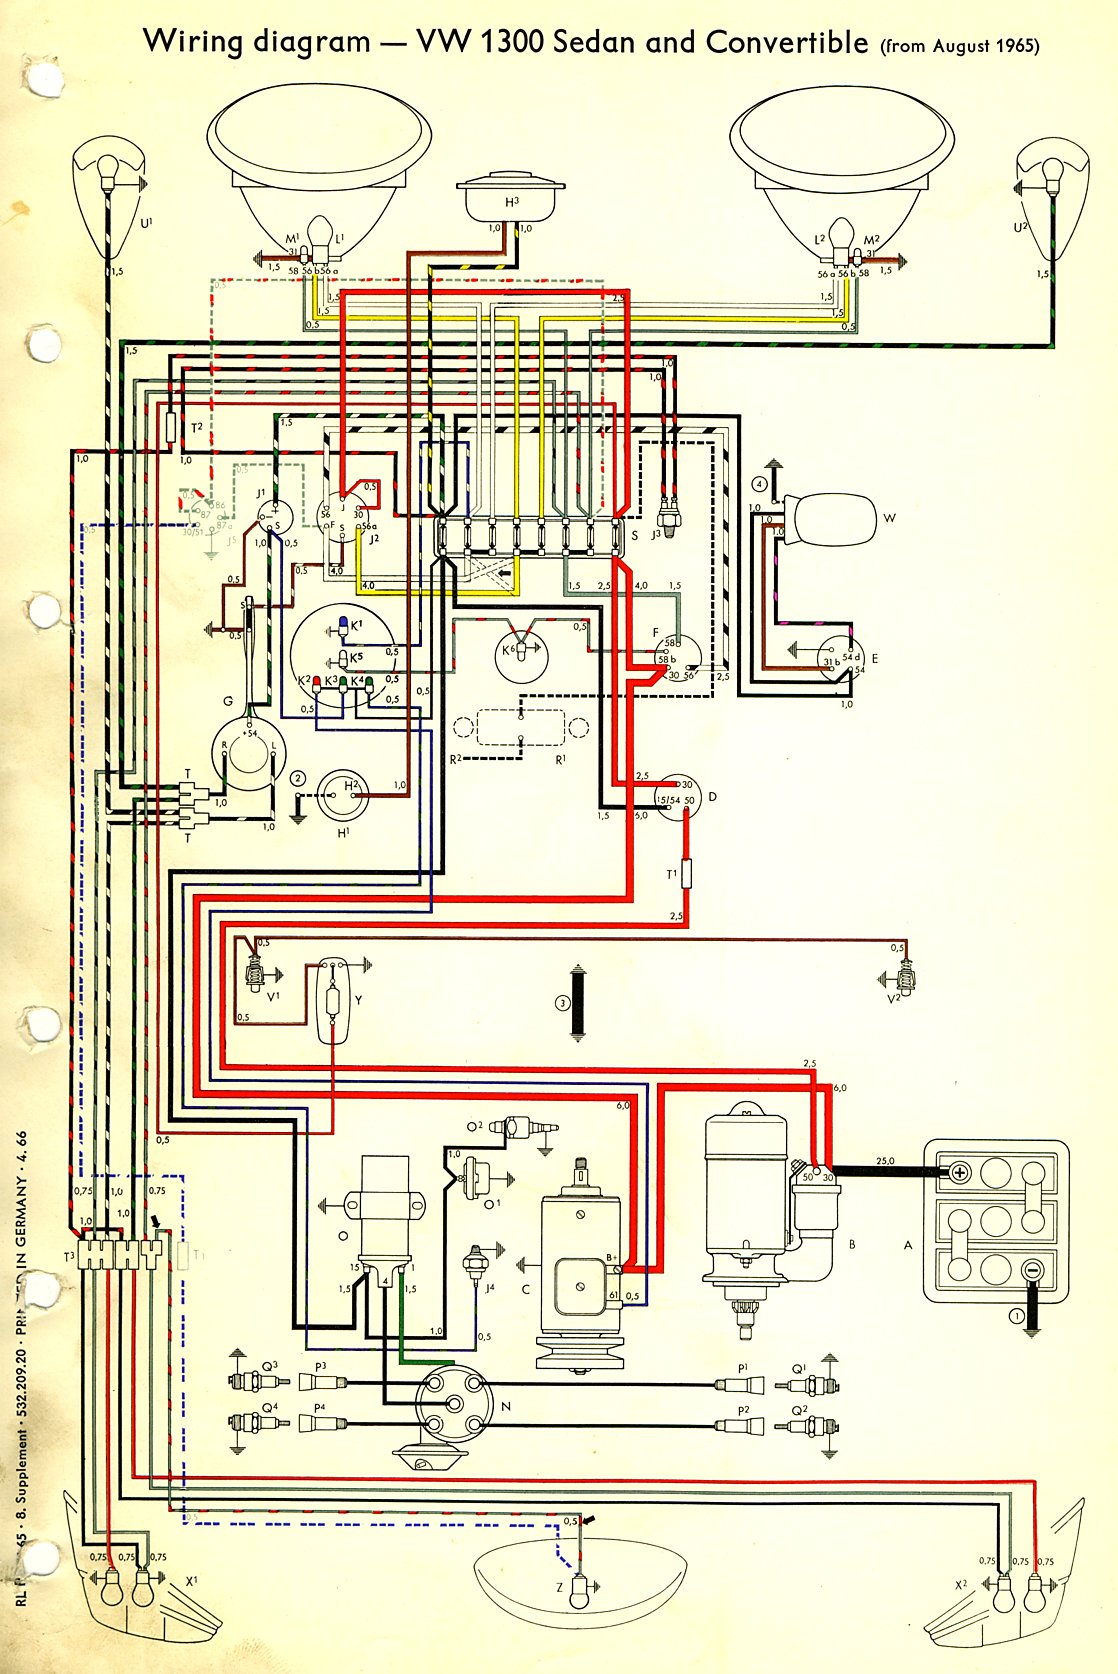 66 vw wiring diagram 1300 residential electrical symbols u2022 rh bookmyad co 74 Beetle Wiring Diagram for Lights On 1976 VW Beetle Wiring Diagram